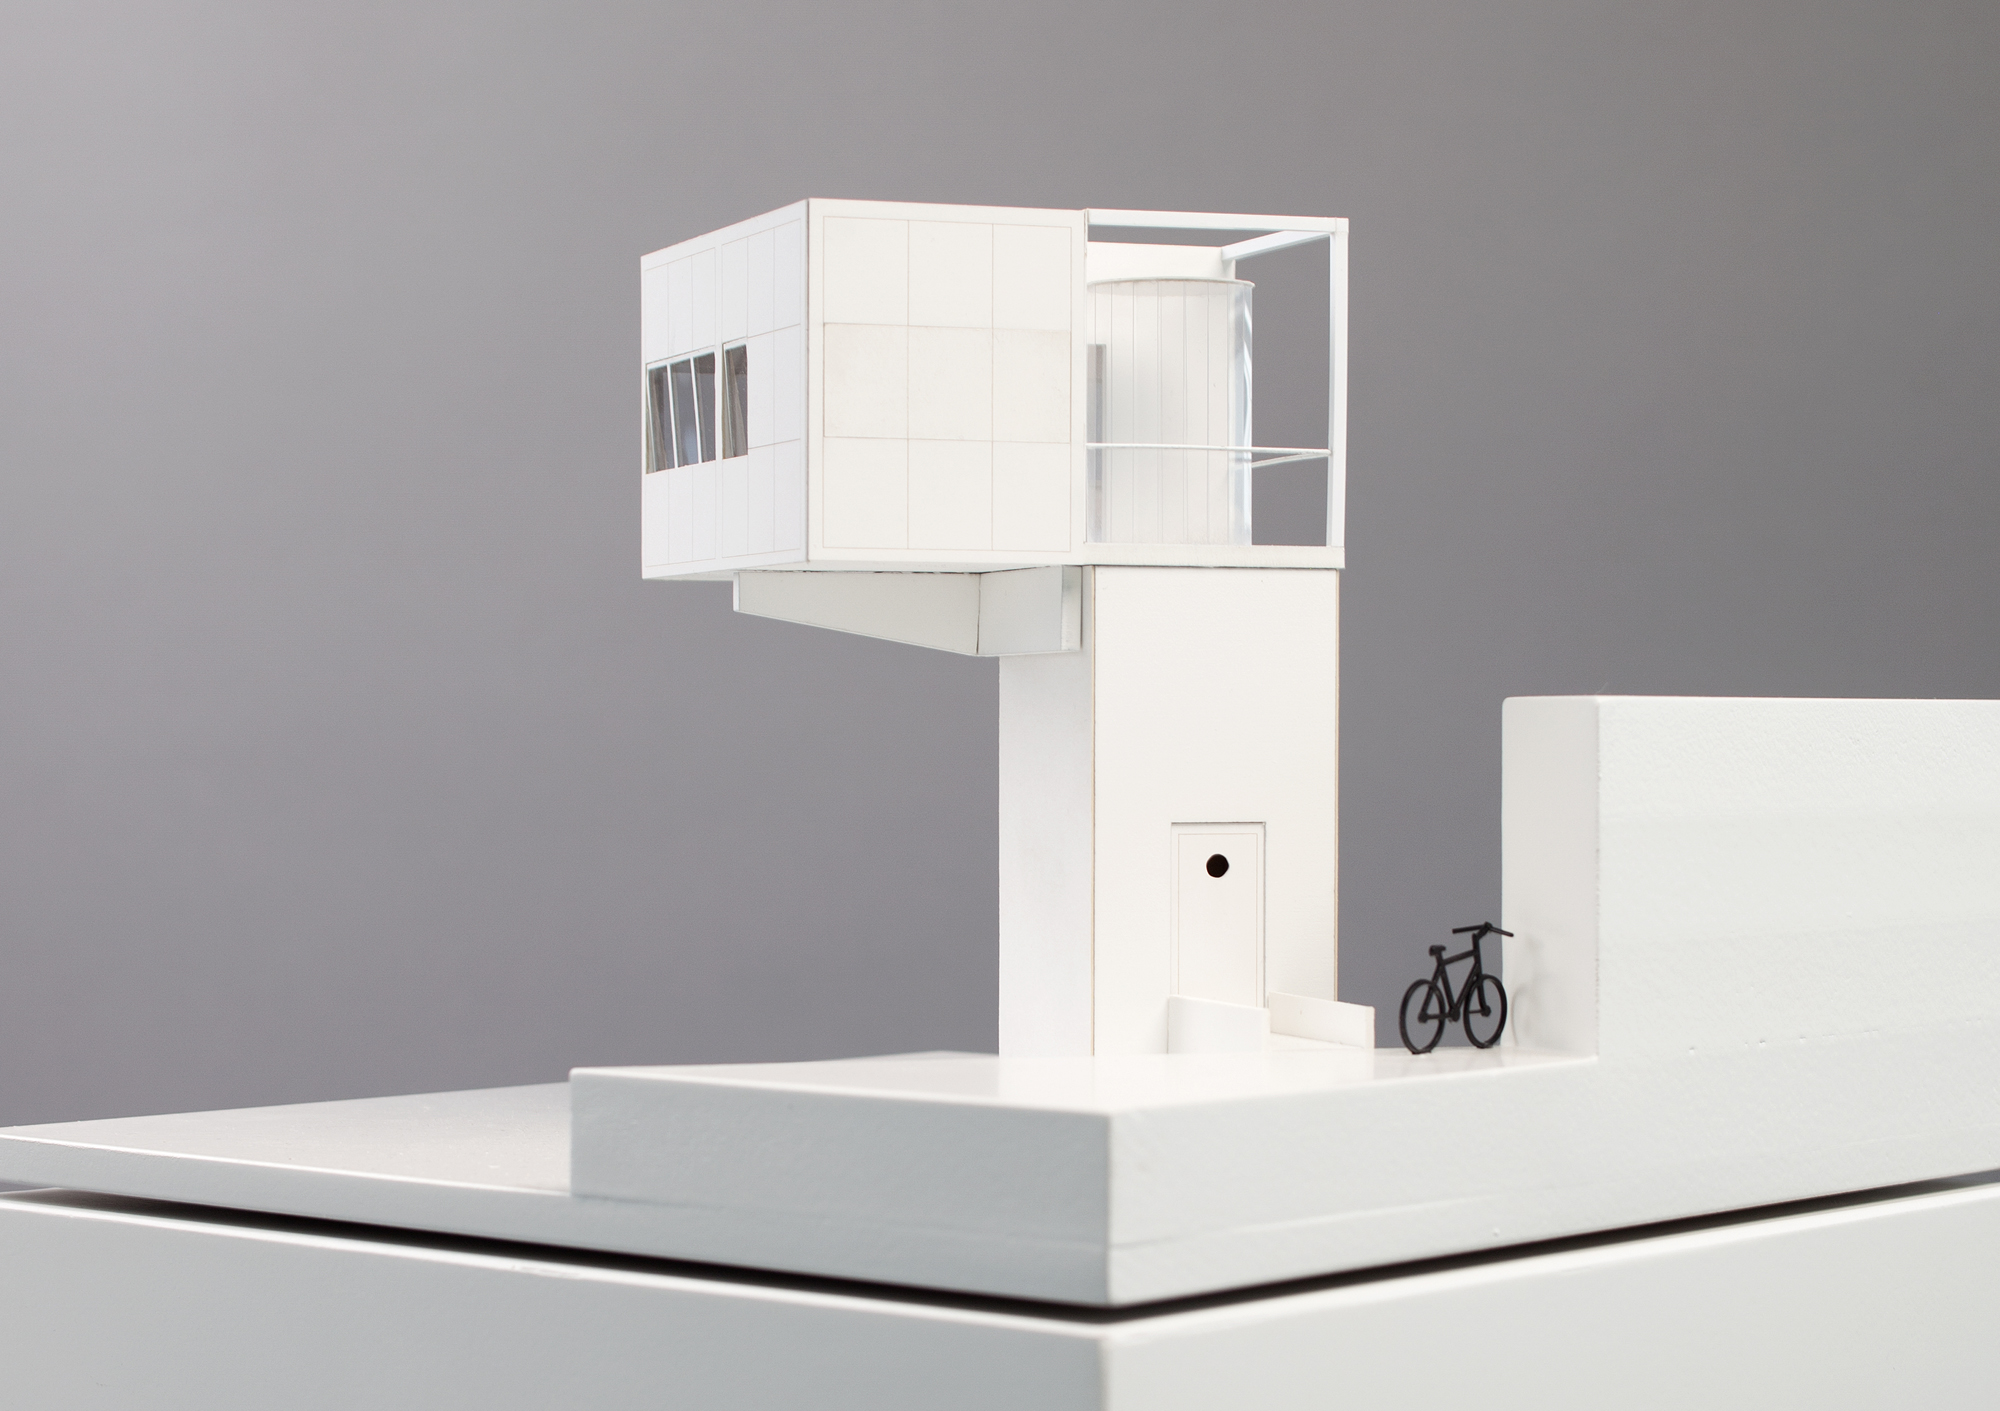 sweets_maquette_001.jpg